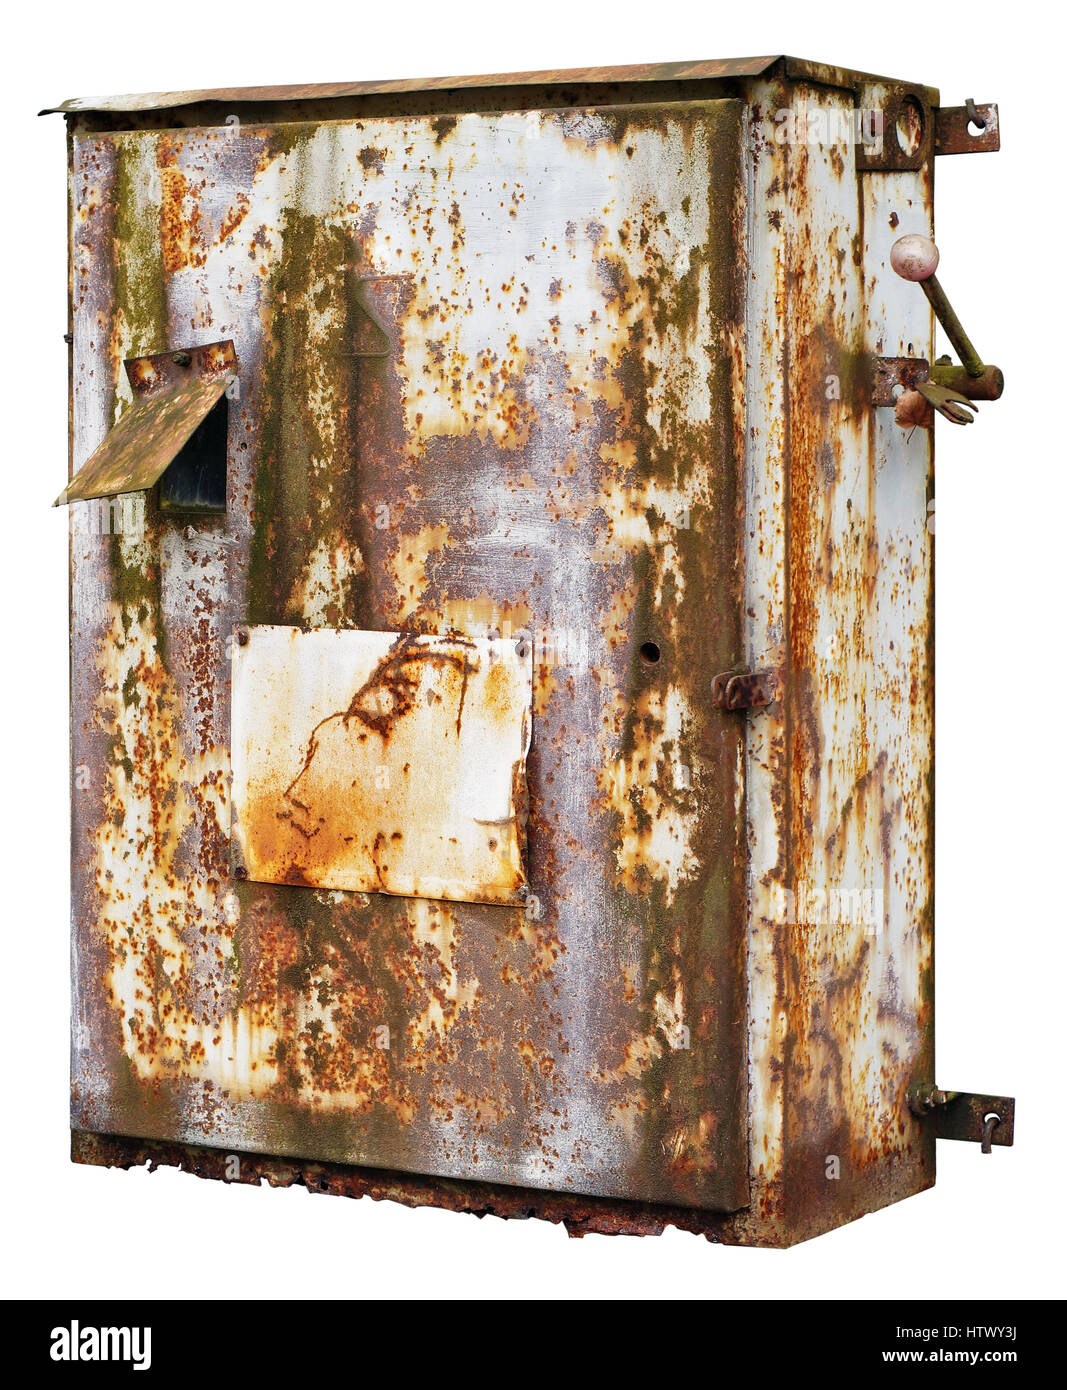 Old Fuses Fuse Box Cut Out Stock Images Pictures Alamy Rusty Retro Metal For Electrical And Switches Isolated Image